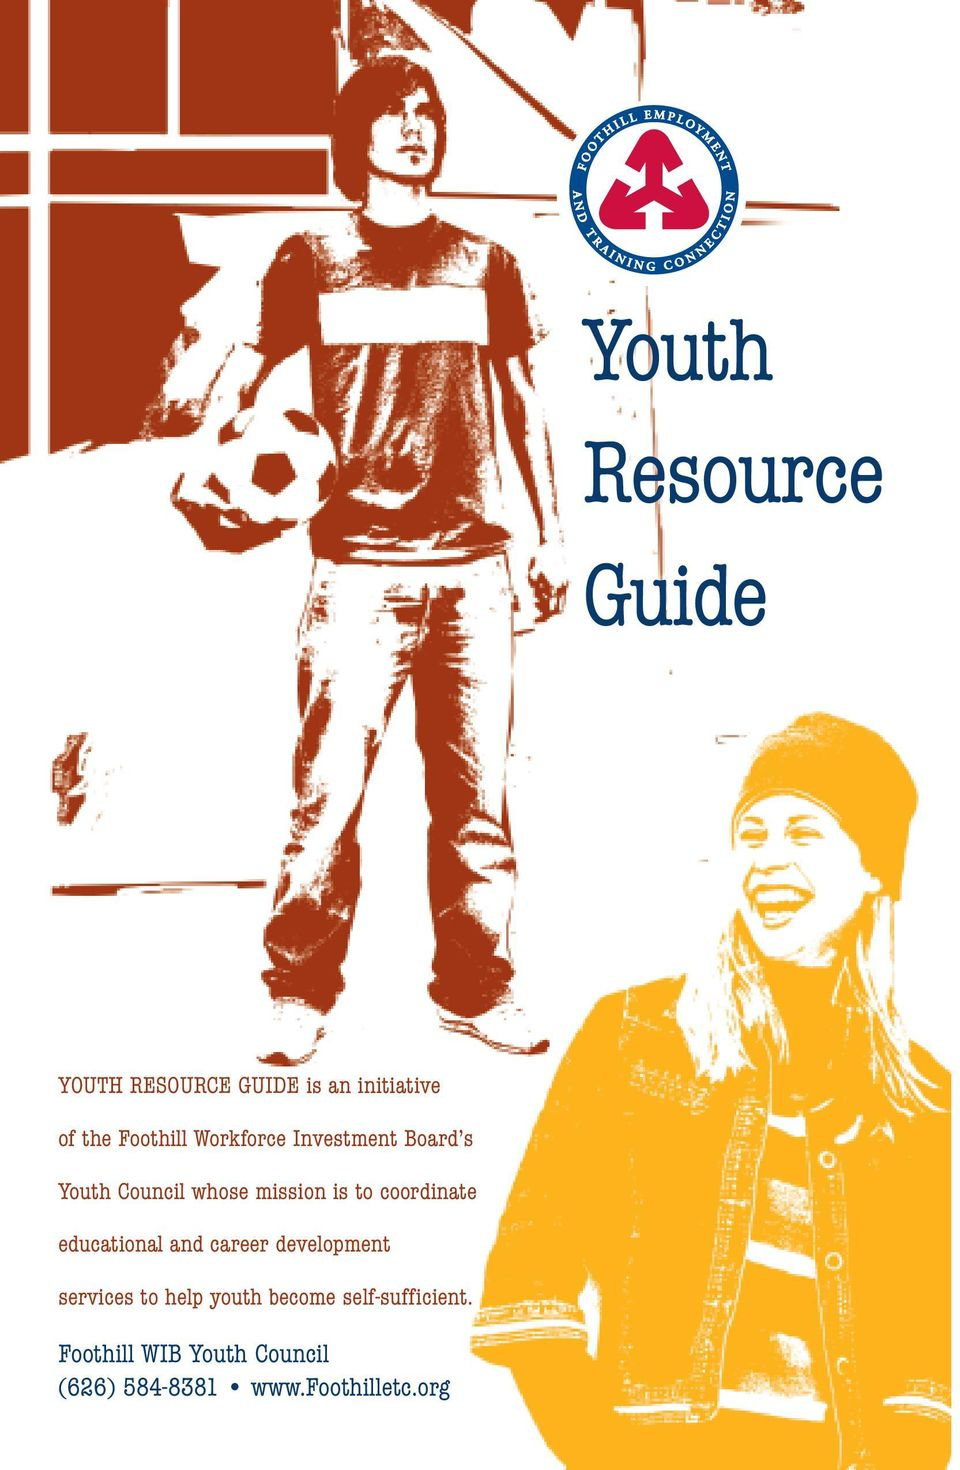 coordinate educational and career development services to help youth